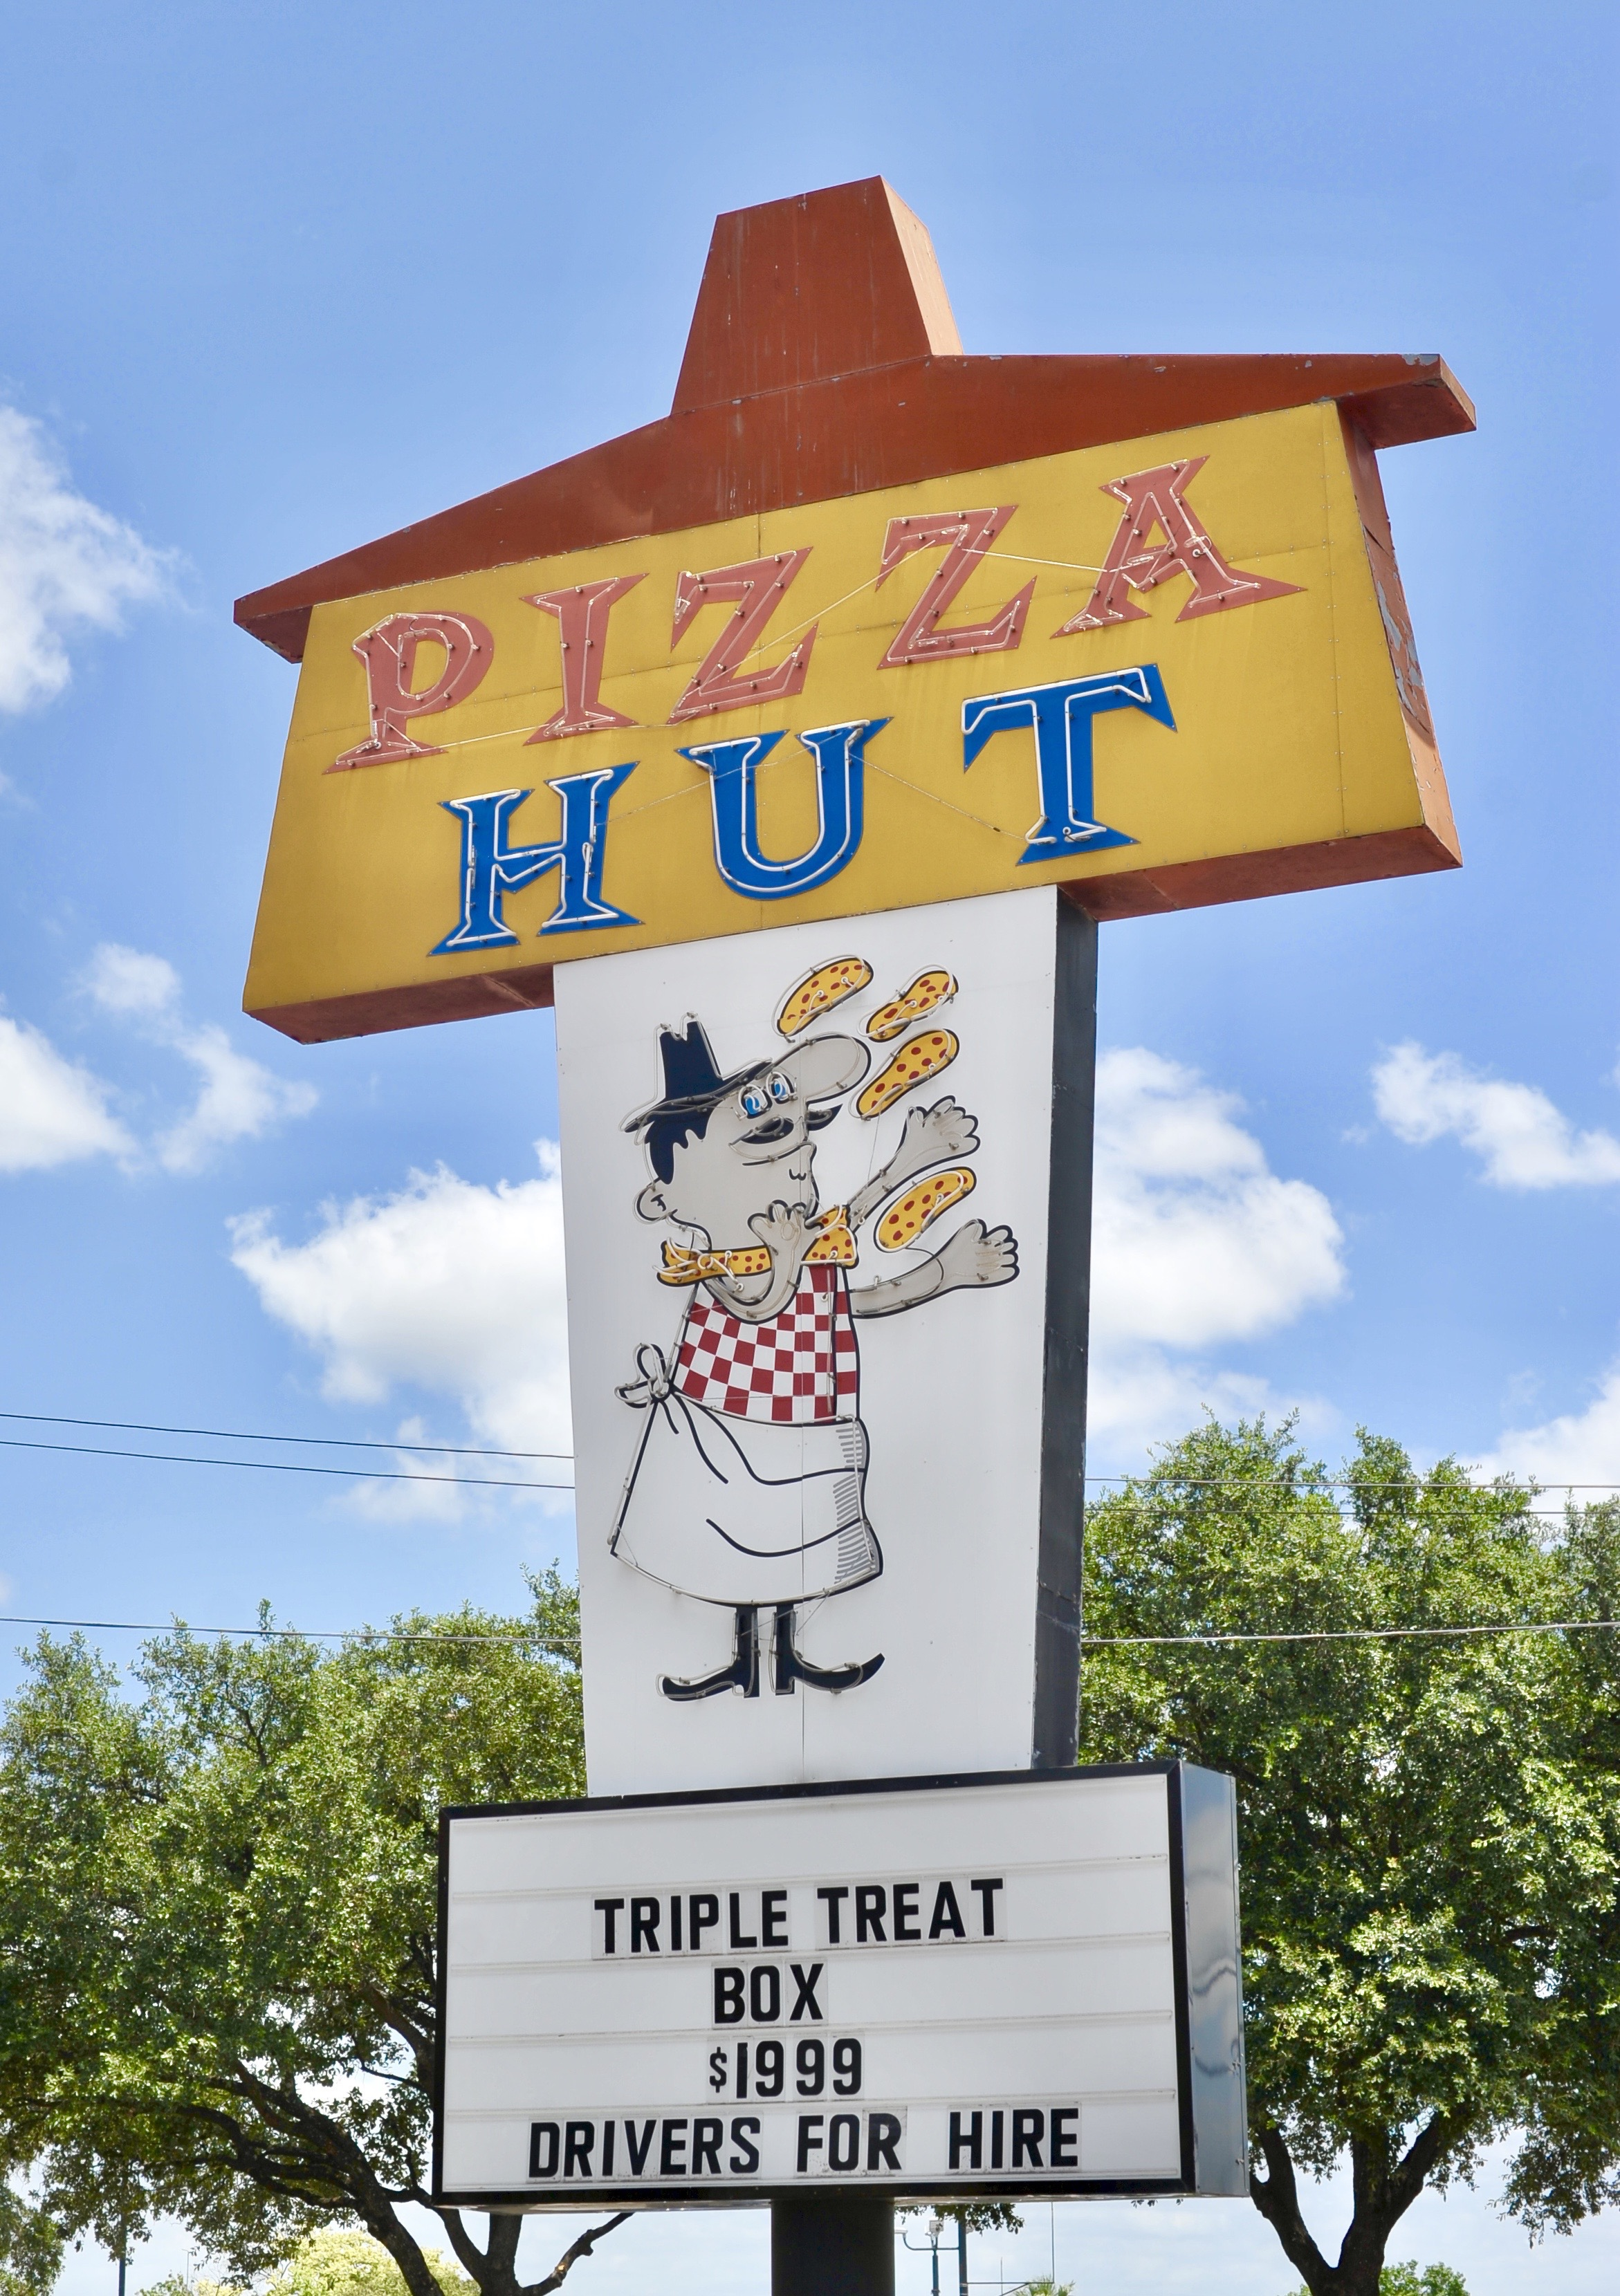 Pizza Hut - 4250 Fredericksburg Road, San Antonio, Texas U.S.A. - July 16, 2016